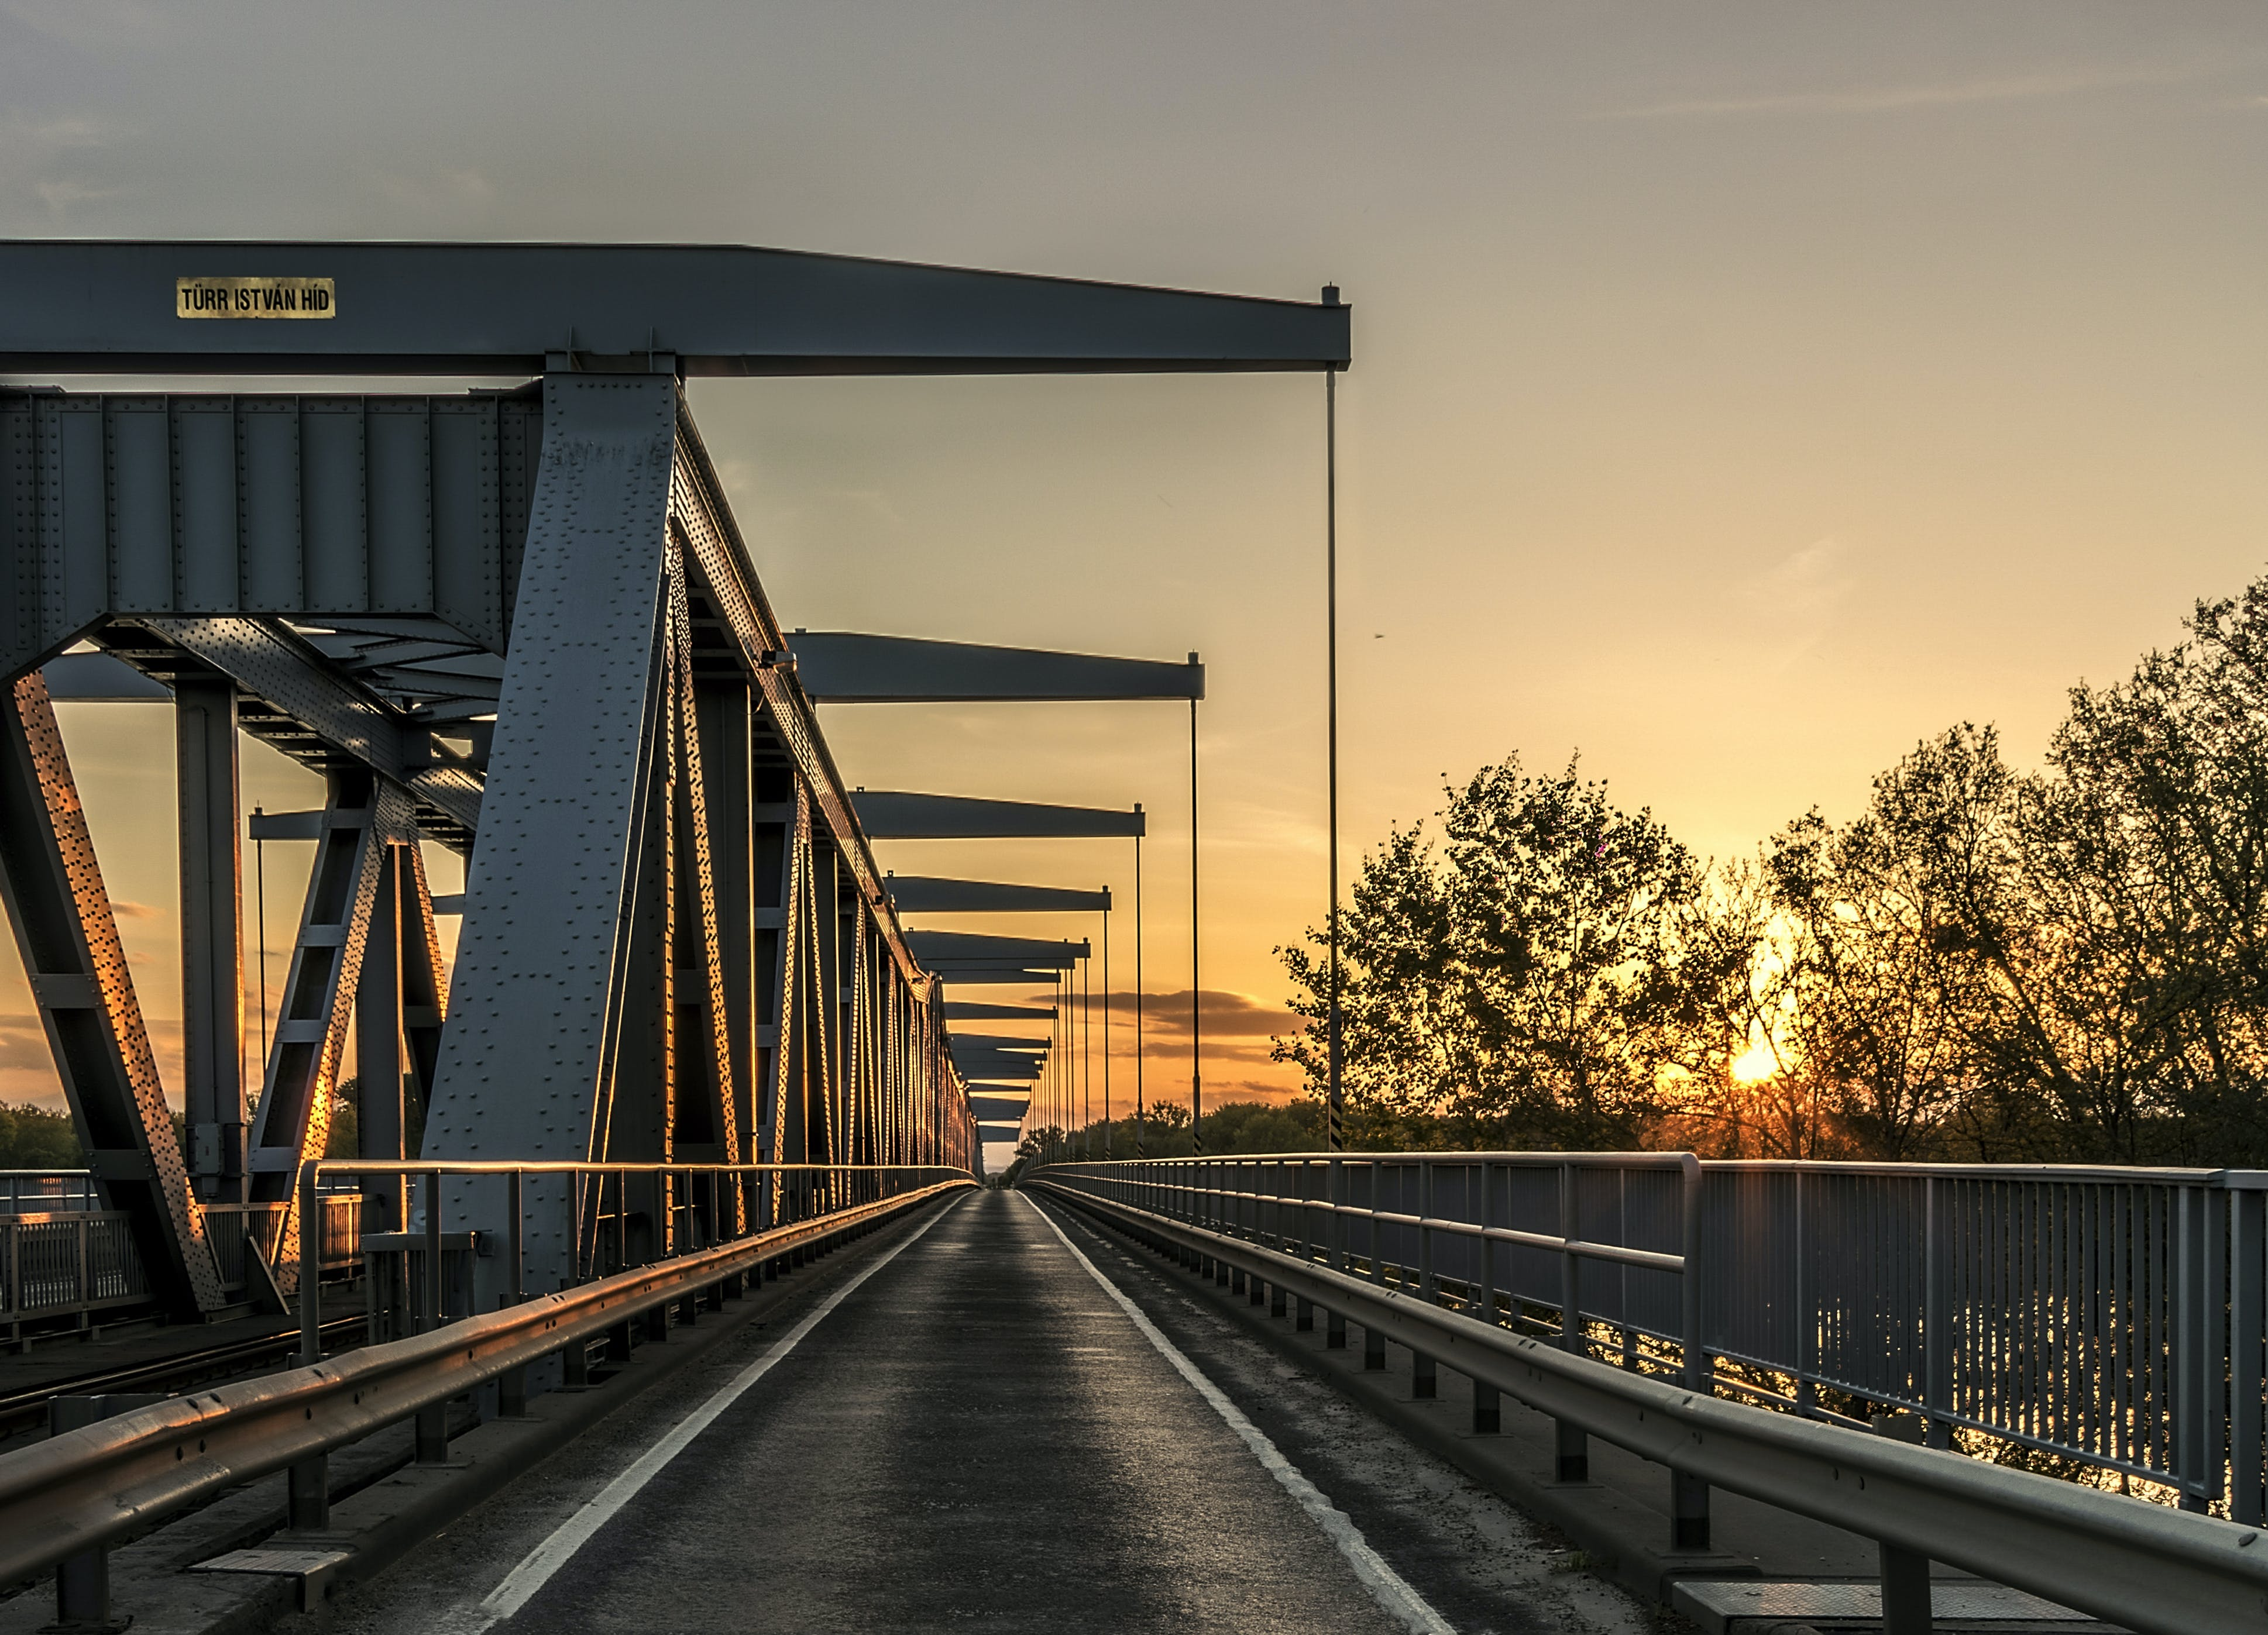 Gray and Black Bridge Near Trees during Sunset